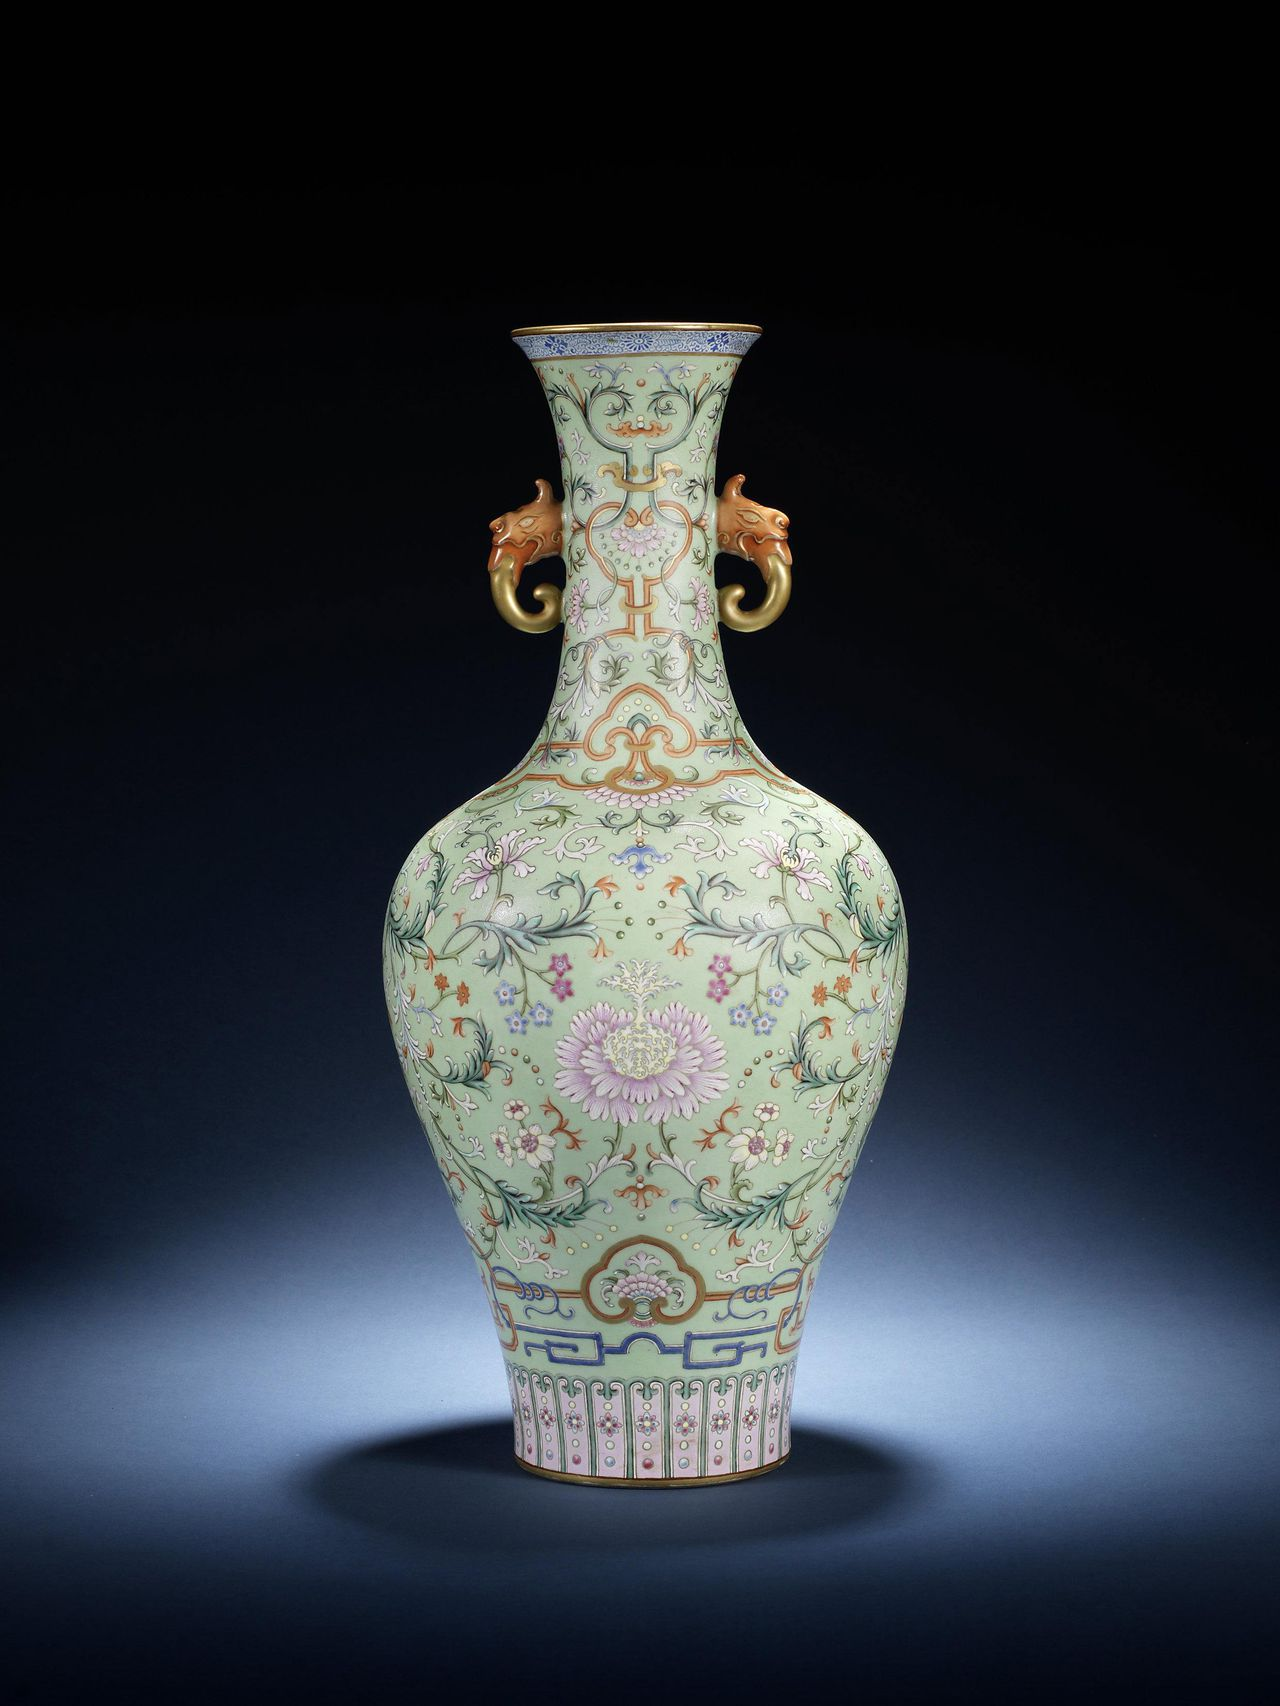 This photo issued by Bonhams in London, shows a detail of an Imperial Chinese vase thought to have been kept at the royal palace in Beijing's Forbidden City, which sold for more than 9 million pounds sterling at auction in Bonhams auction house in London Thursday Nov. 10, 2011. The buyer is understood to be from the Chinese mainland. (AP Photo / Bonhams) EDITORIAL USE ONLY